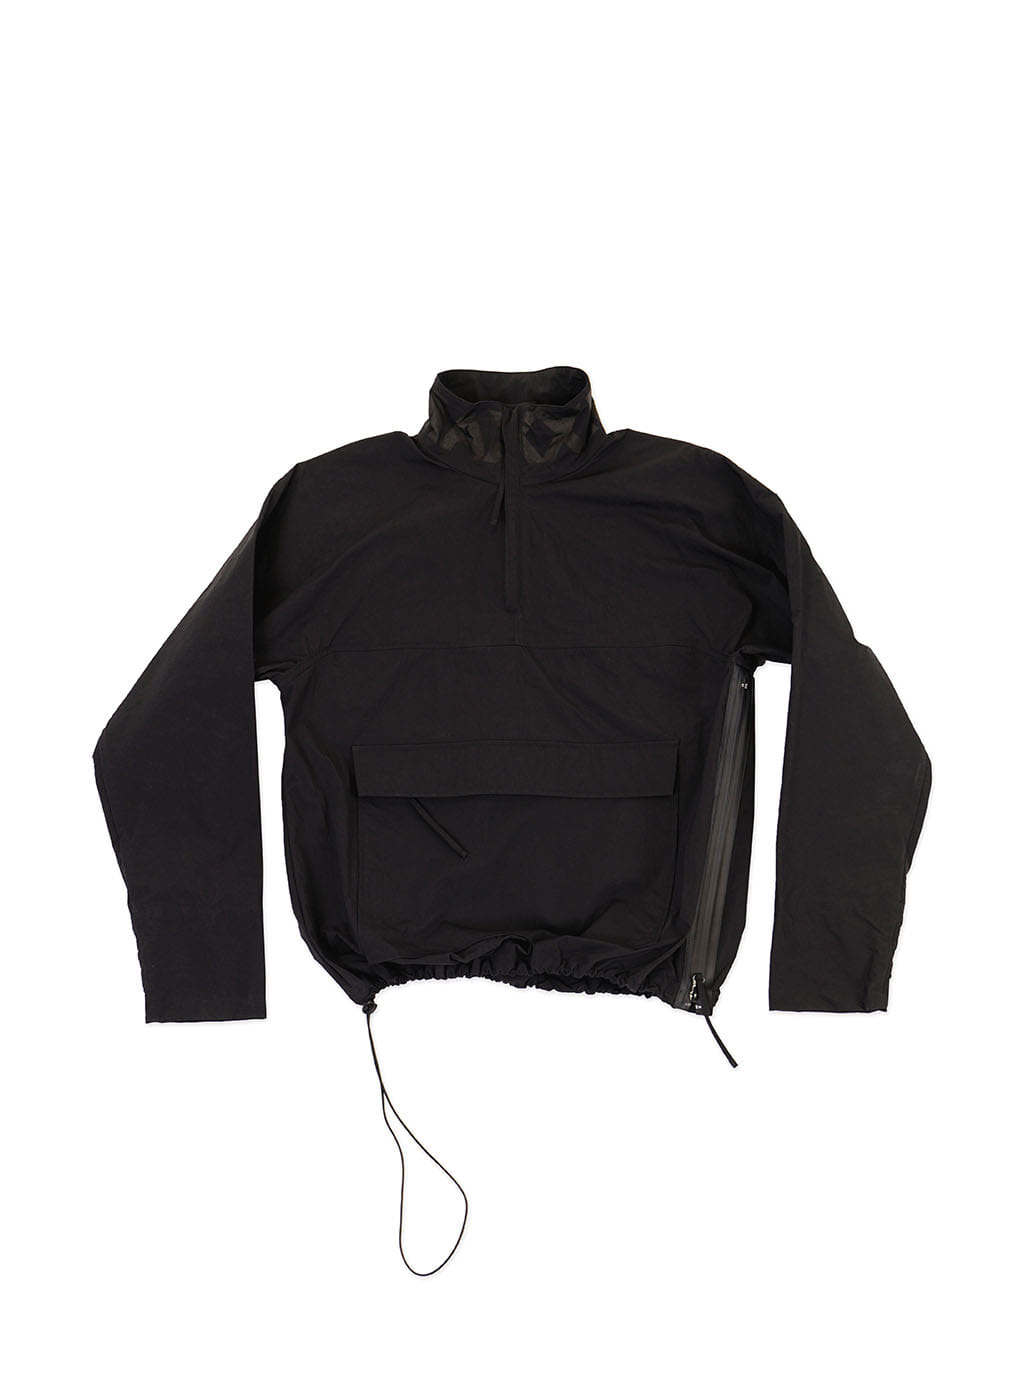 Black Anorak Jumper